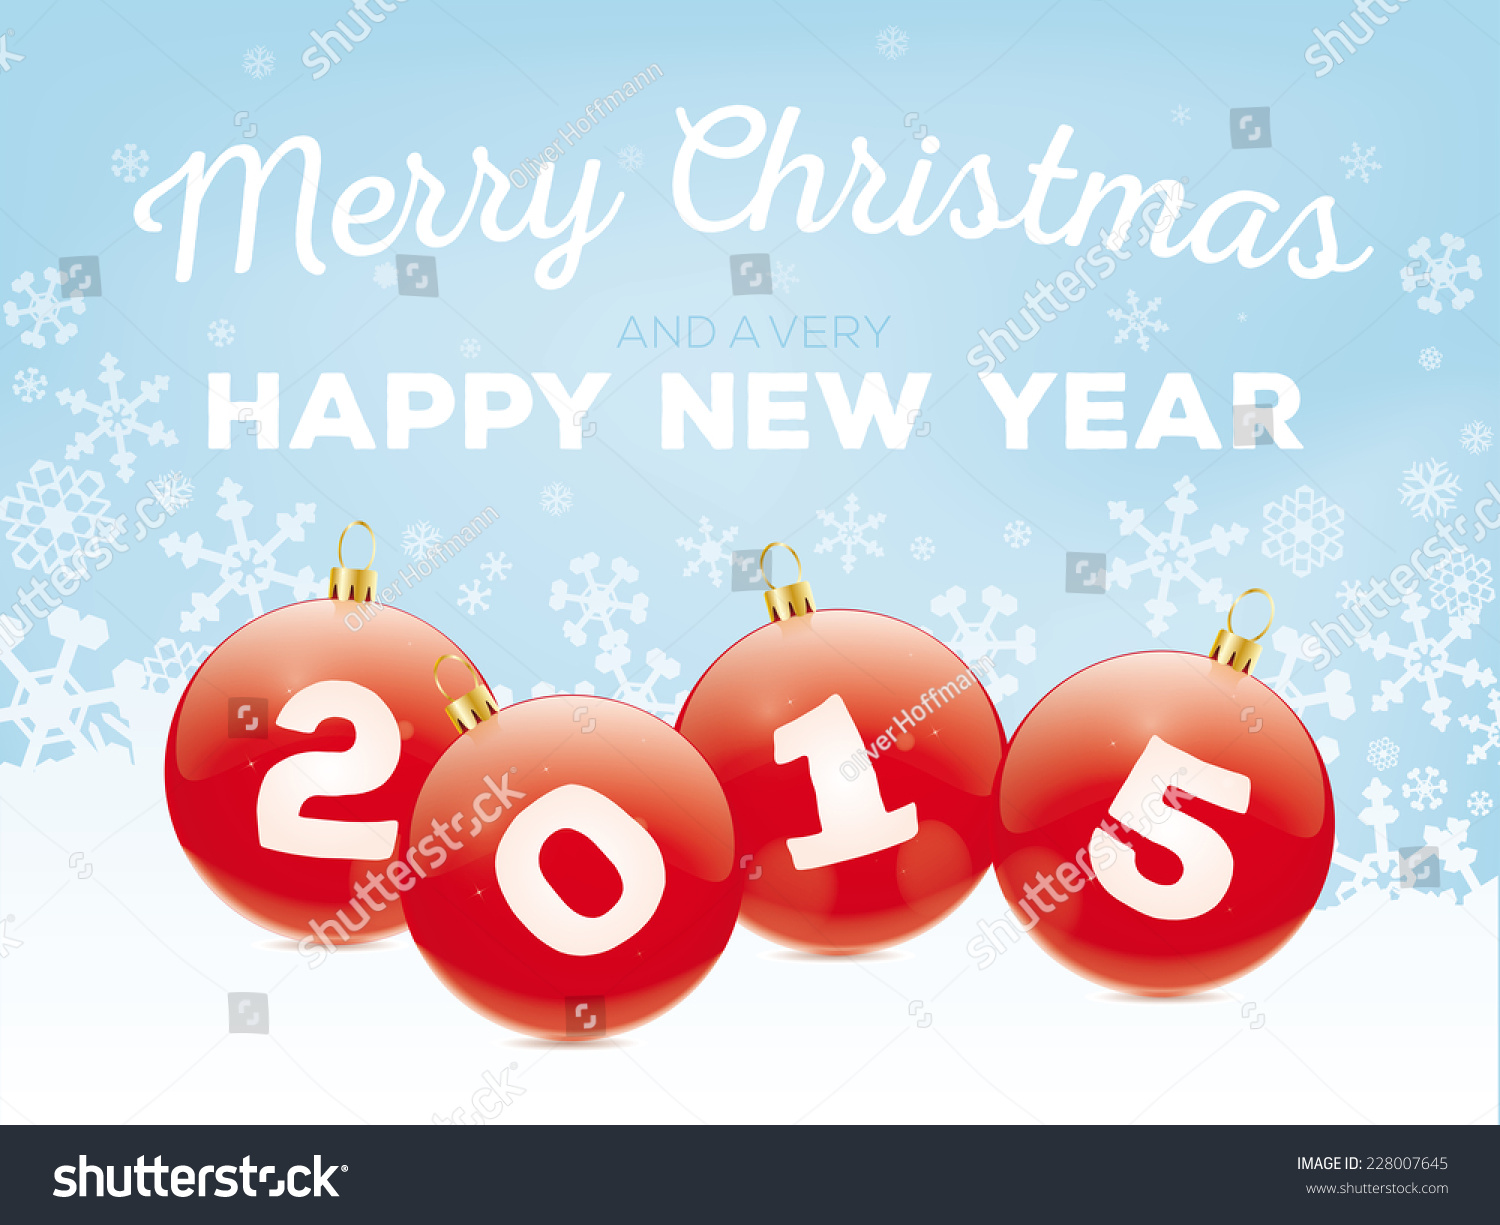 Merry christmas happy new year 2015 stock vector 228007645 merry christmas and happy new year 2015 greeting card vector illustration with baubles and snow flakes kristyandbryce Images